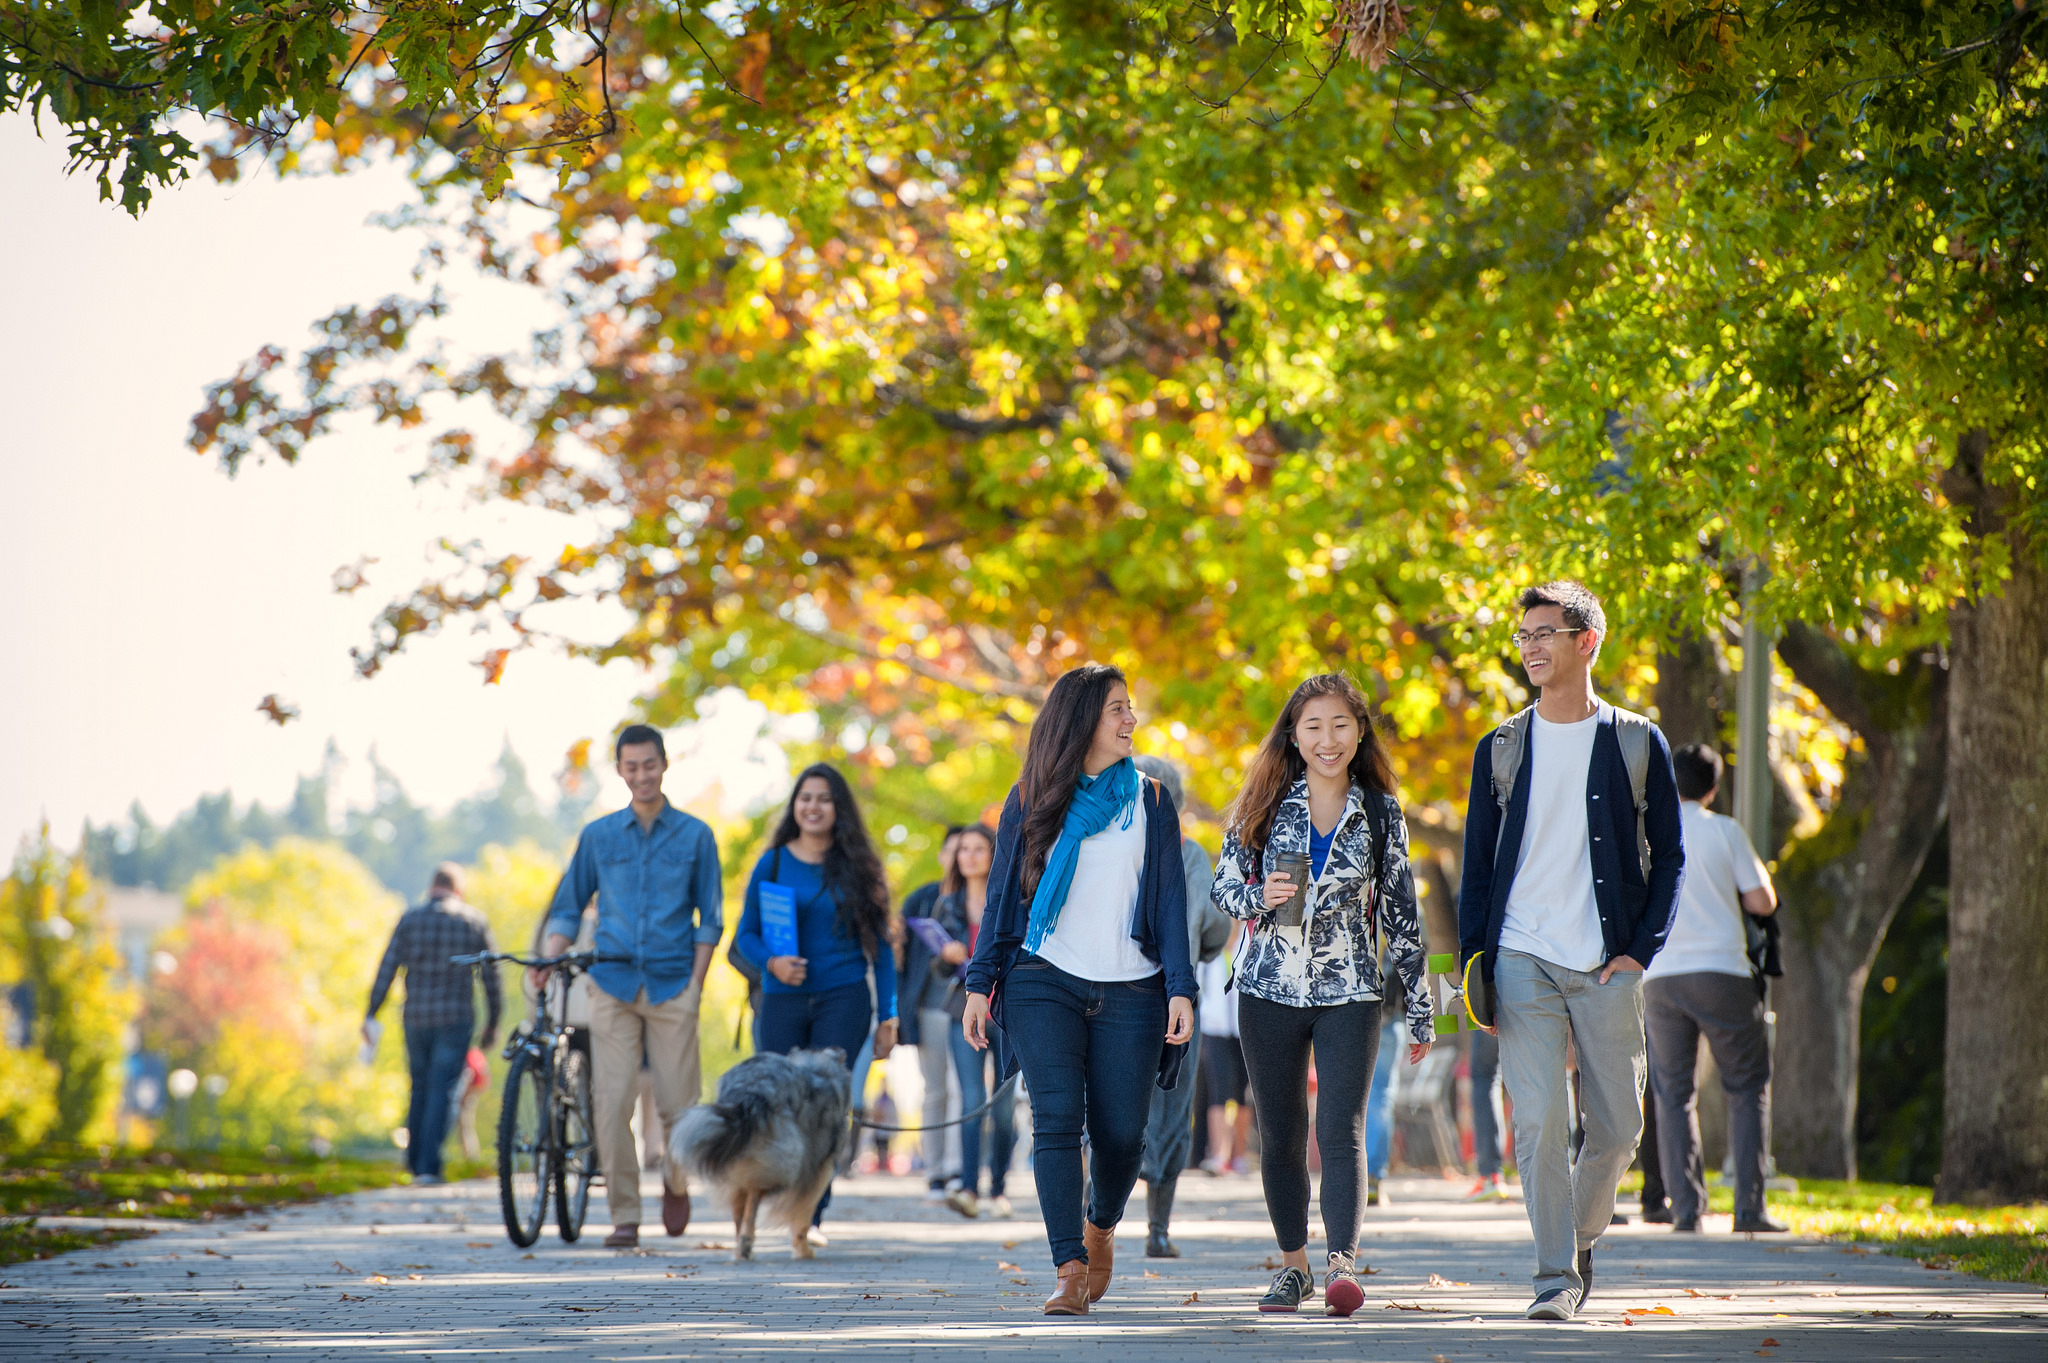 UBC's admissions process is changing in 2019